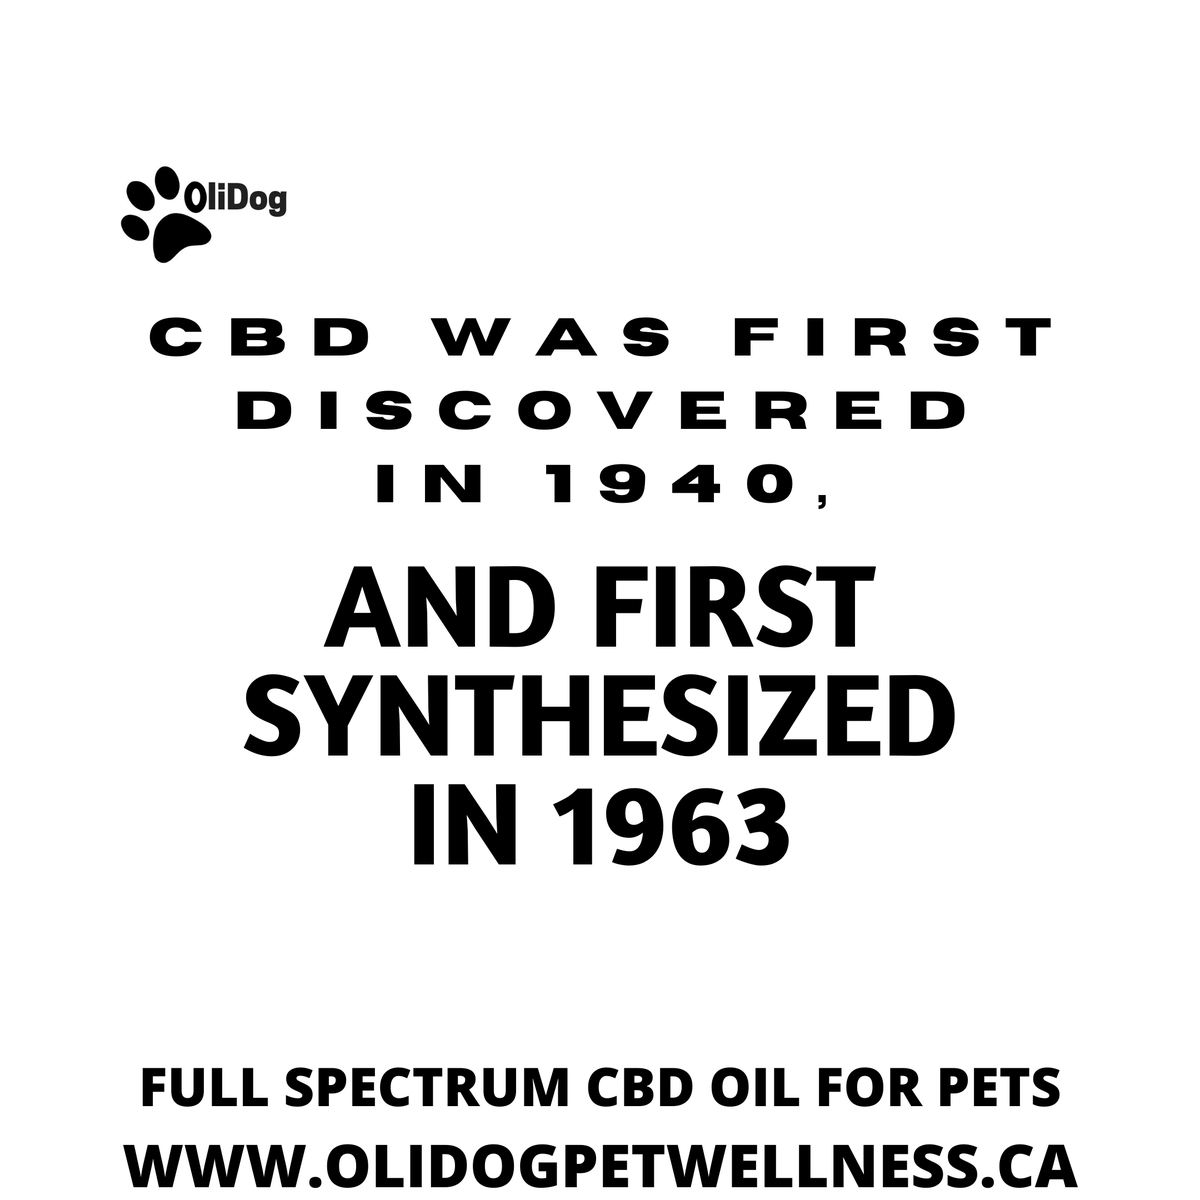 Here's some #MondayThoughts! Did you know? Though evidence of cannabis consumption by humans dates back thousands of years, #CBD was not isolated until 1940 by the chemist Roger Adams, and its chemical structure wasn't clearly defined until 1963 by Raphael Mechoulam. #dogsofinsta pic.twitter.com/PgH3CfWRJJ